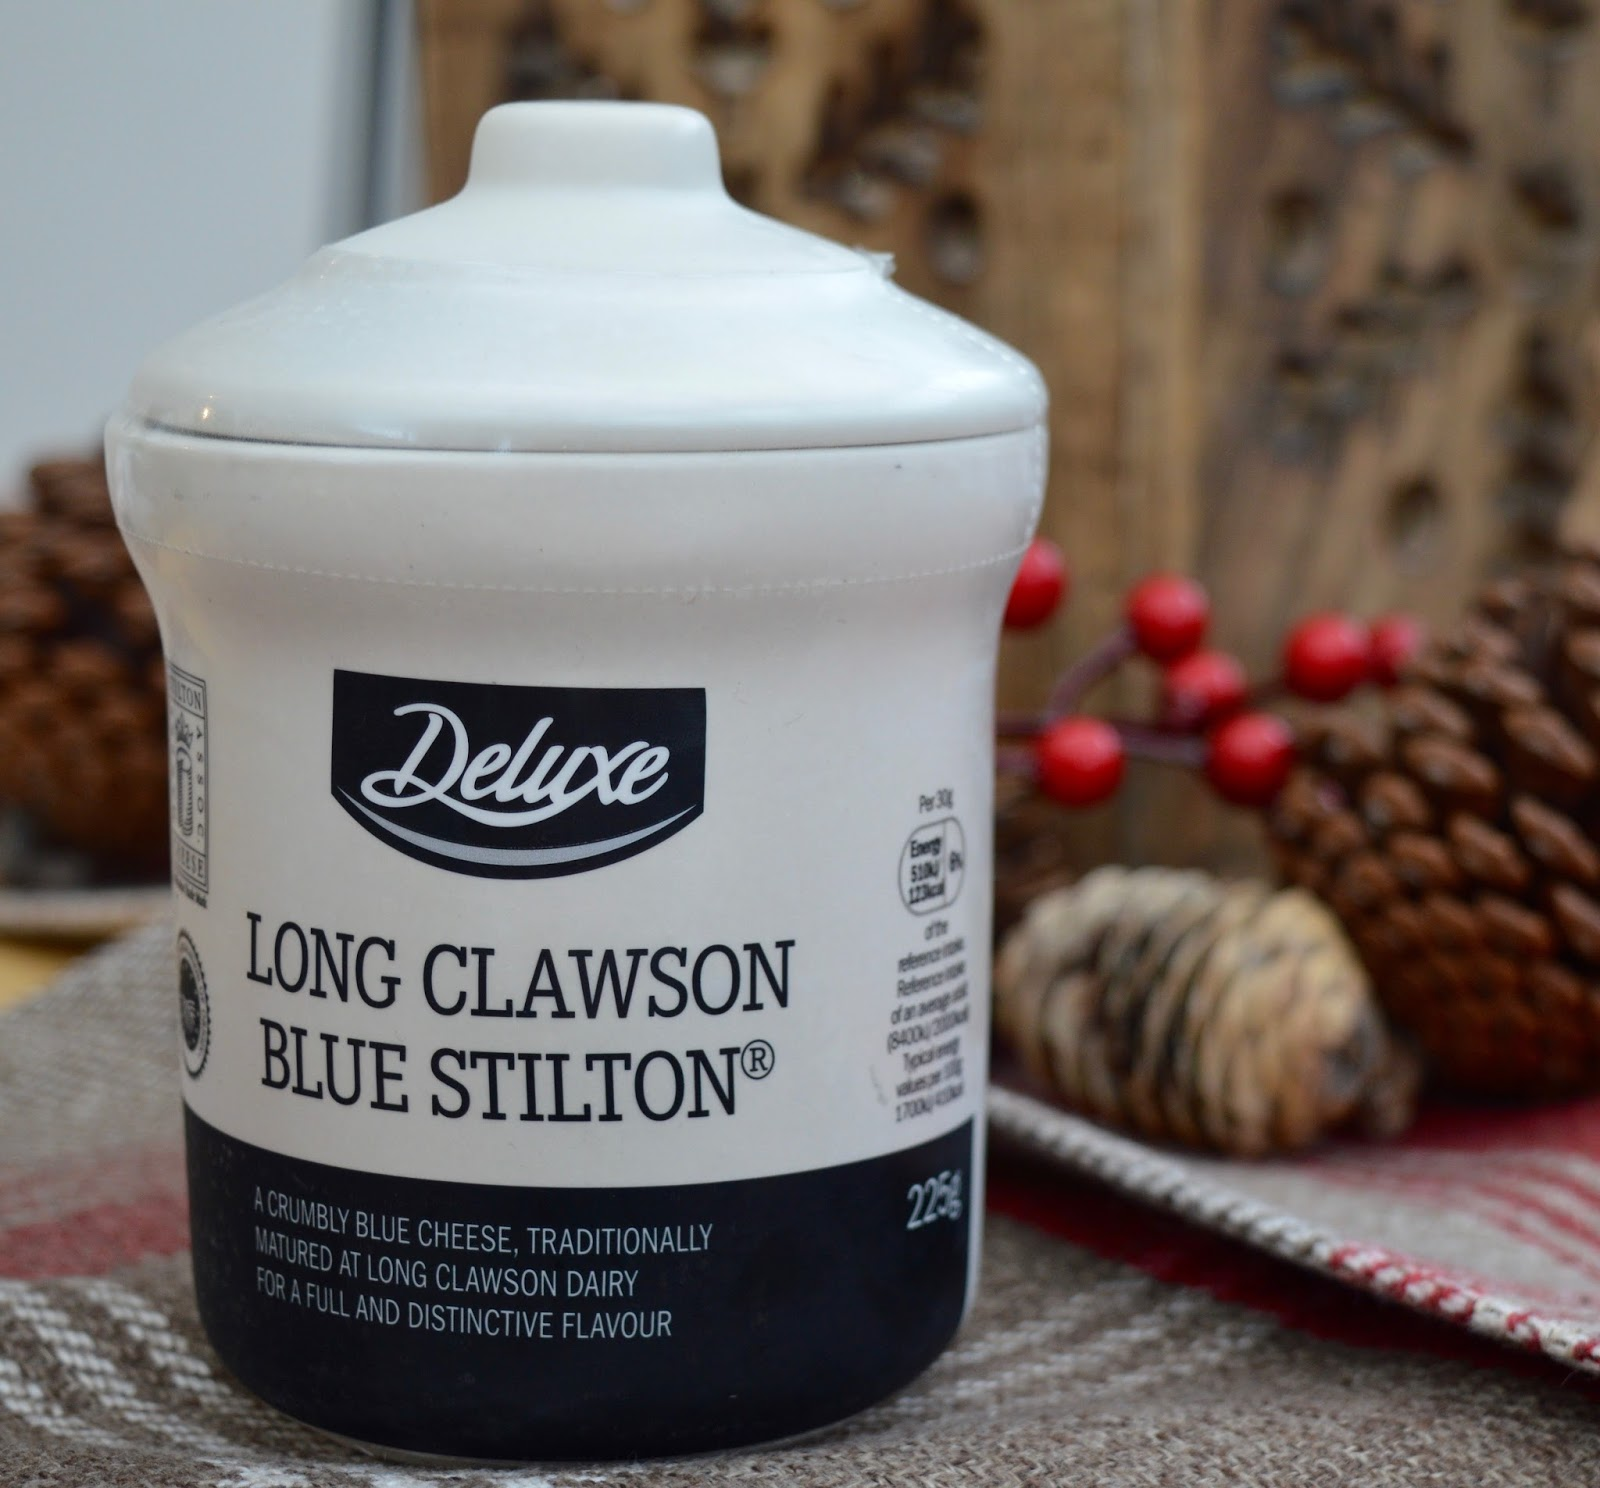 We review Christmas food at Lidl - Mains & Sides | What to Buy & What to Avoid - Deluxe blue stilton in ceramic pot